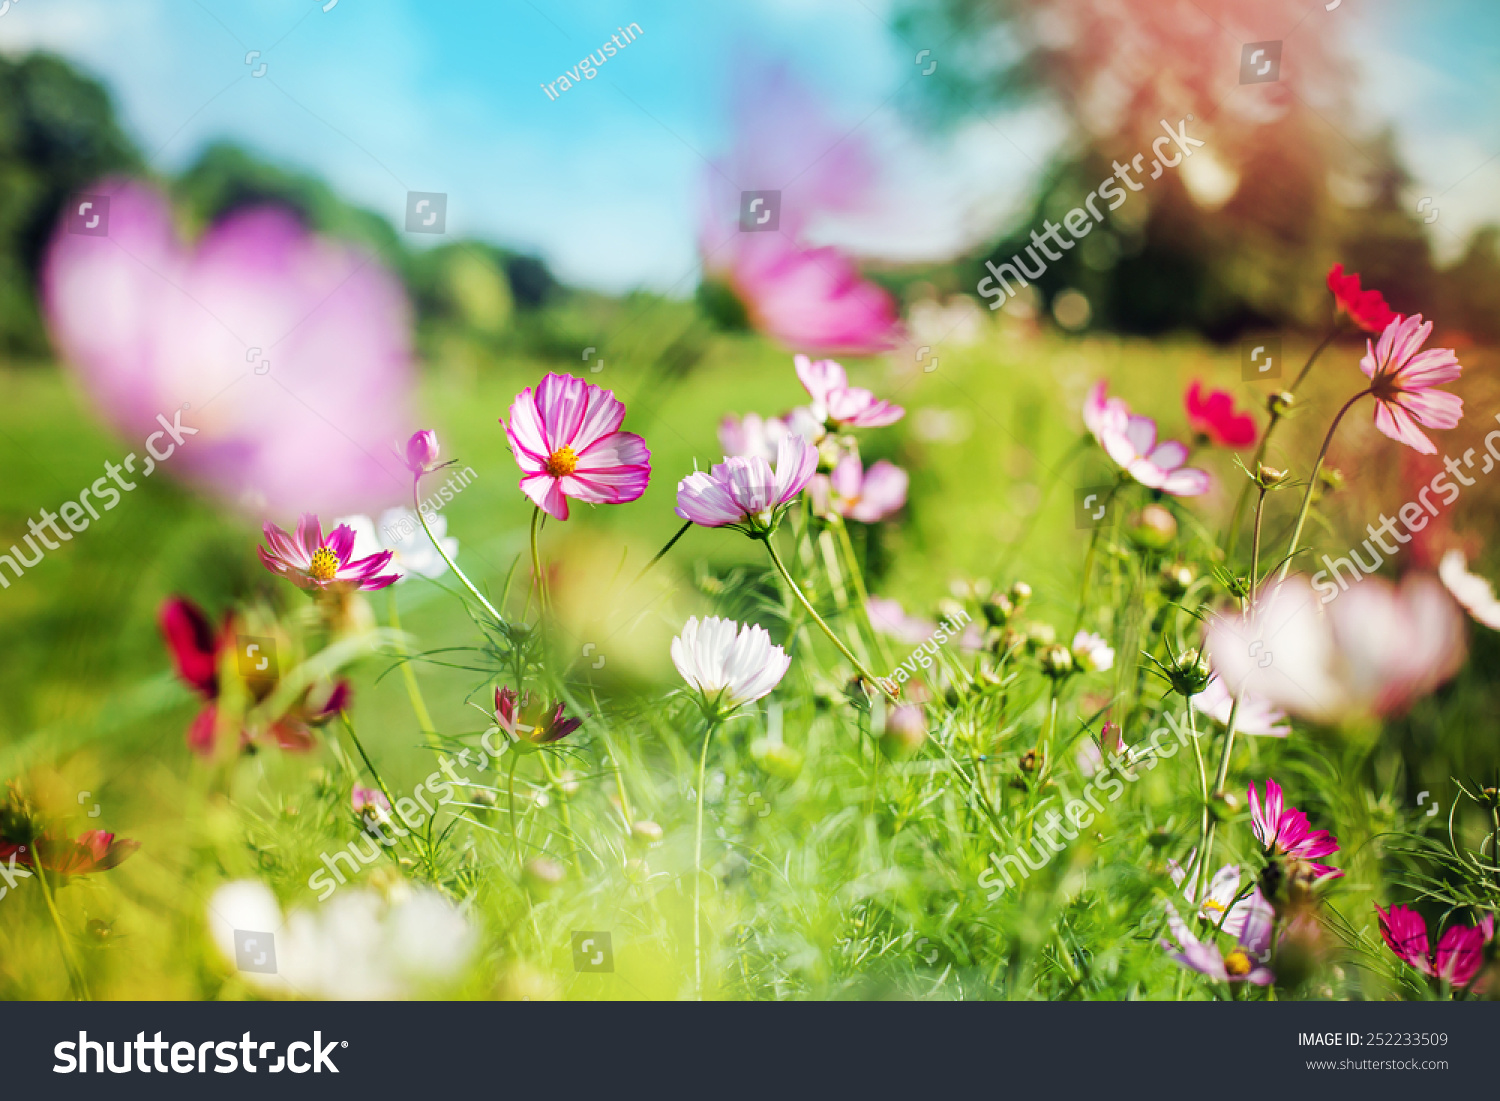 beautiful garden flowers summer flower background - Beautiful Garden Pictures